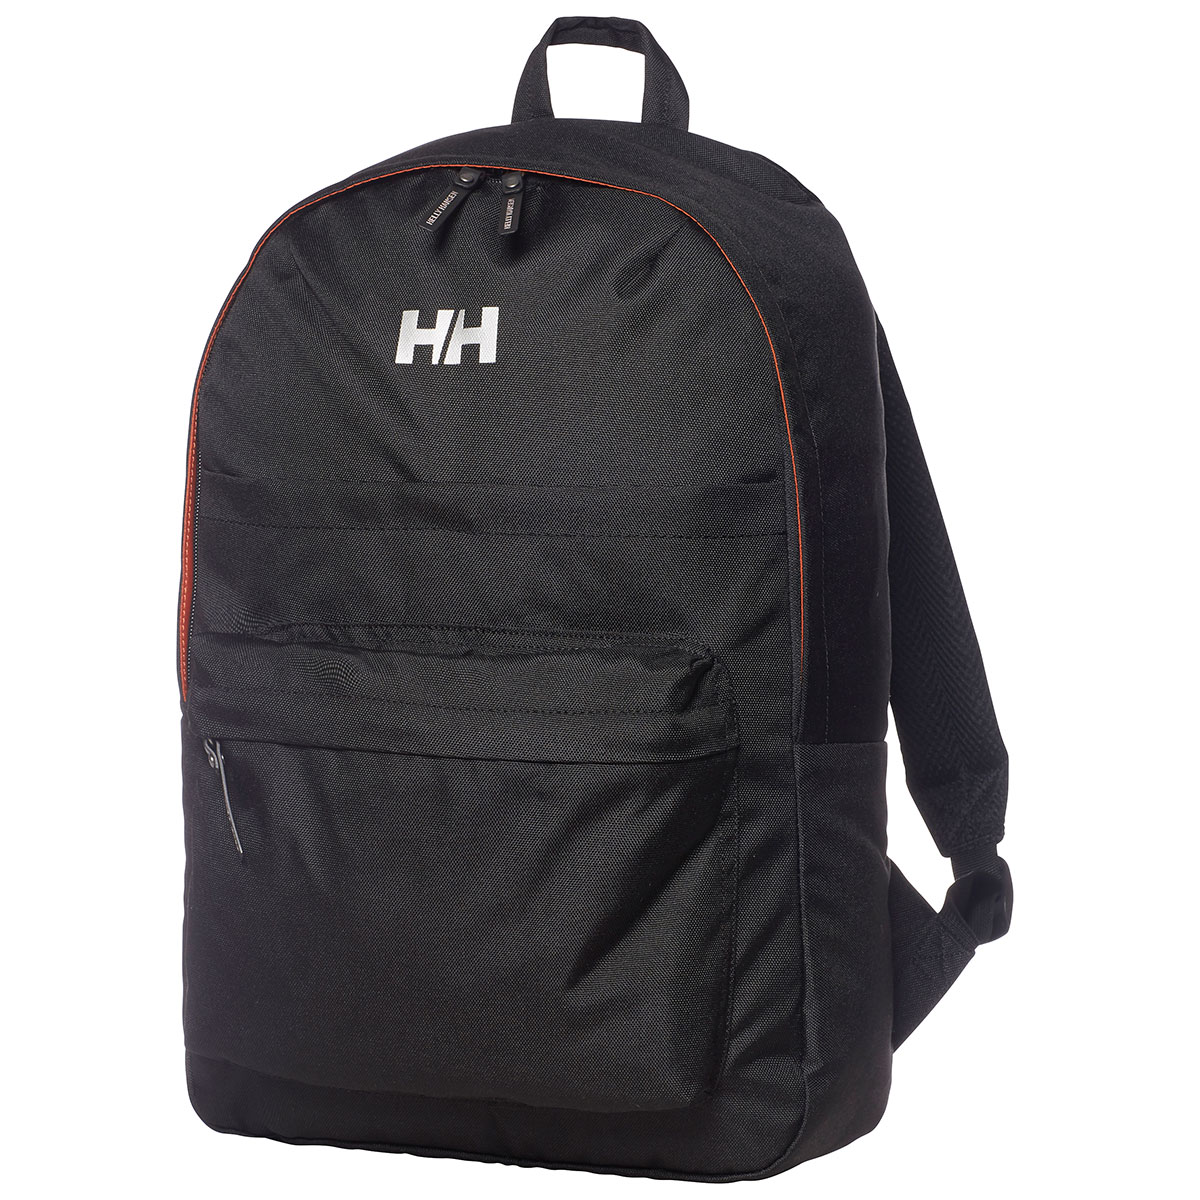 Gym Bag And Backpack: Helly Hansen 2017 Urban Durable Backpack Rucksack School